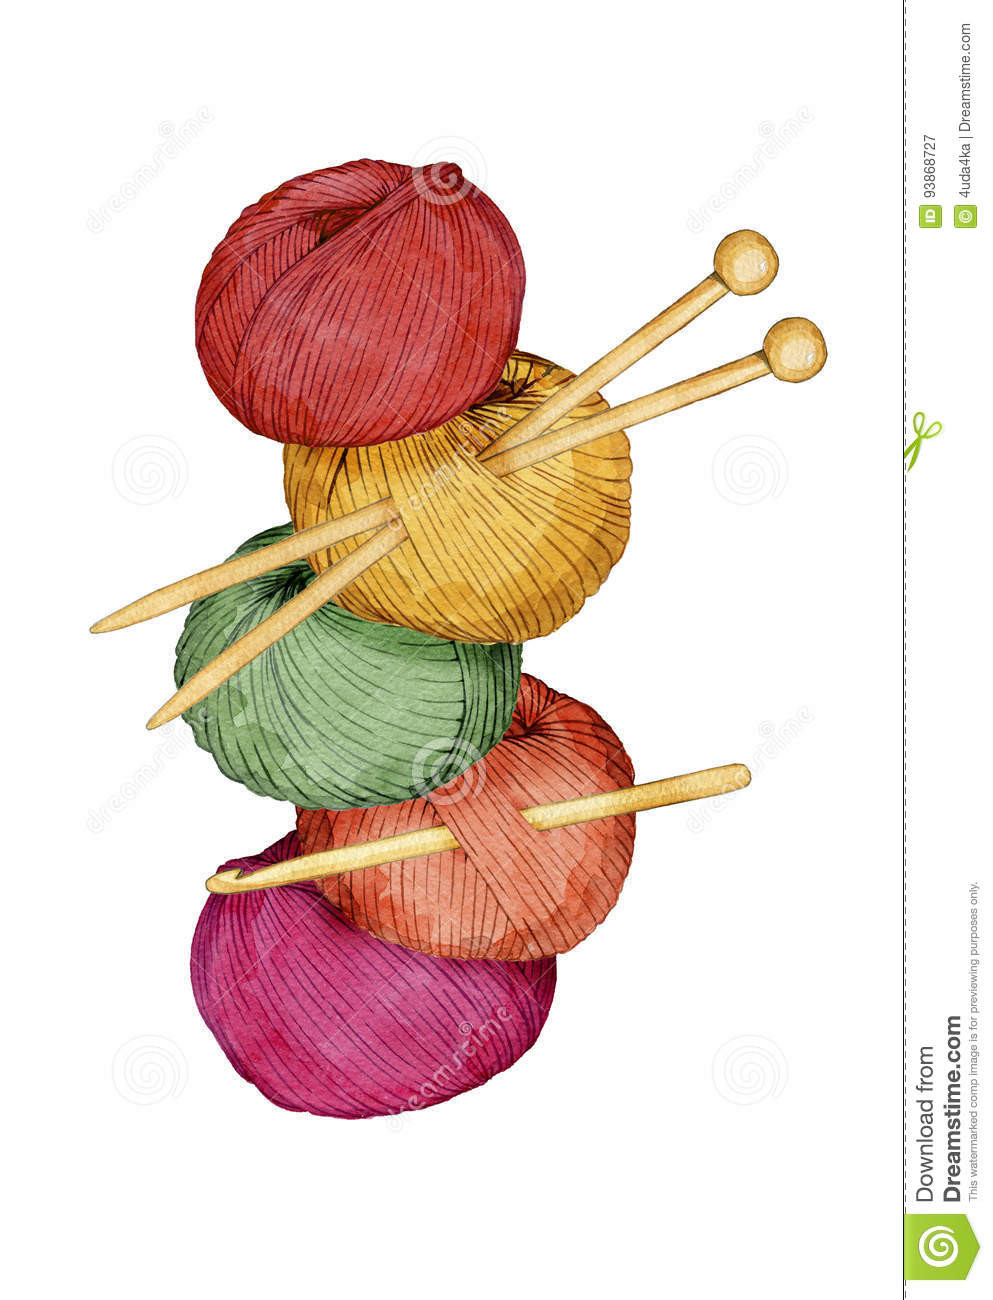 Best Of Needles Cartoons Illustrations & Vector Stock Knitting Needles and Yarn Of Amazing 46 Ideas Knitting Needles and Yarn